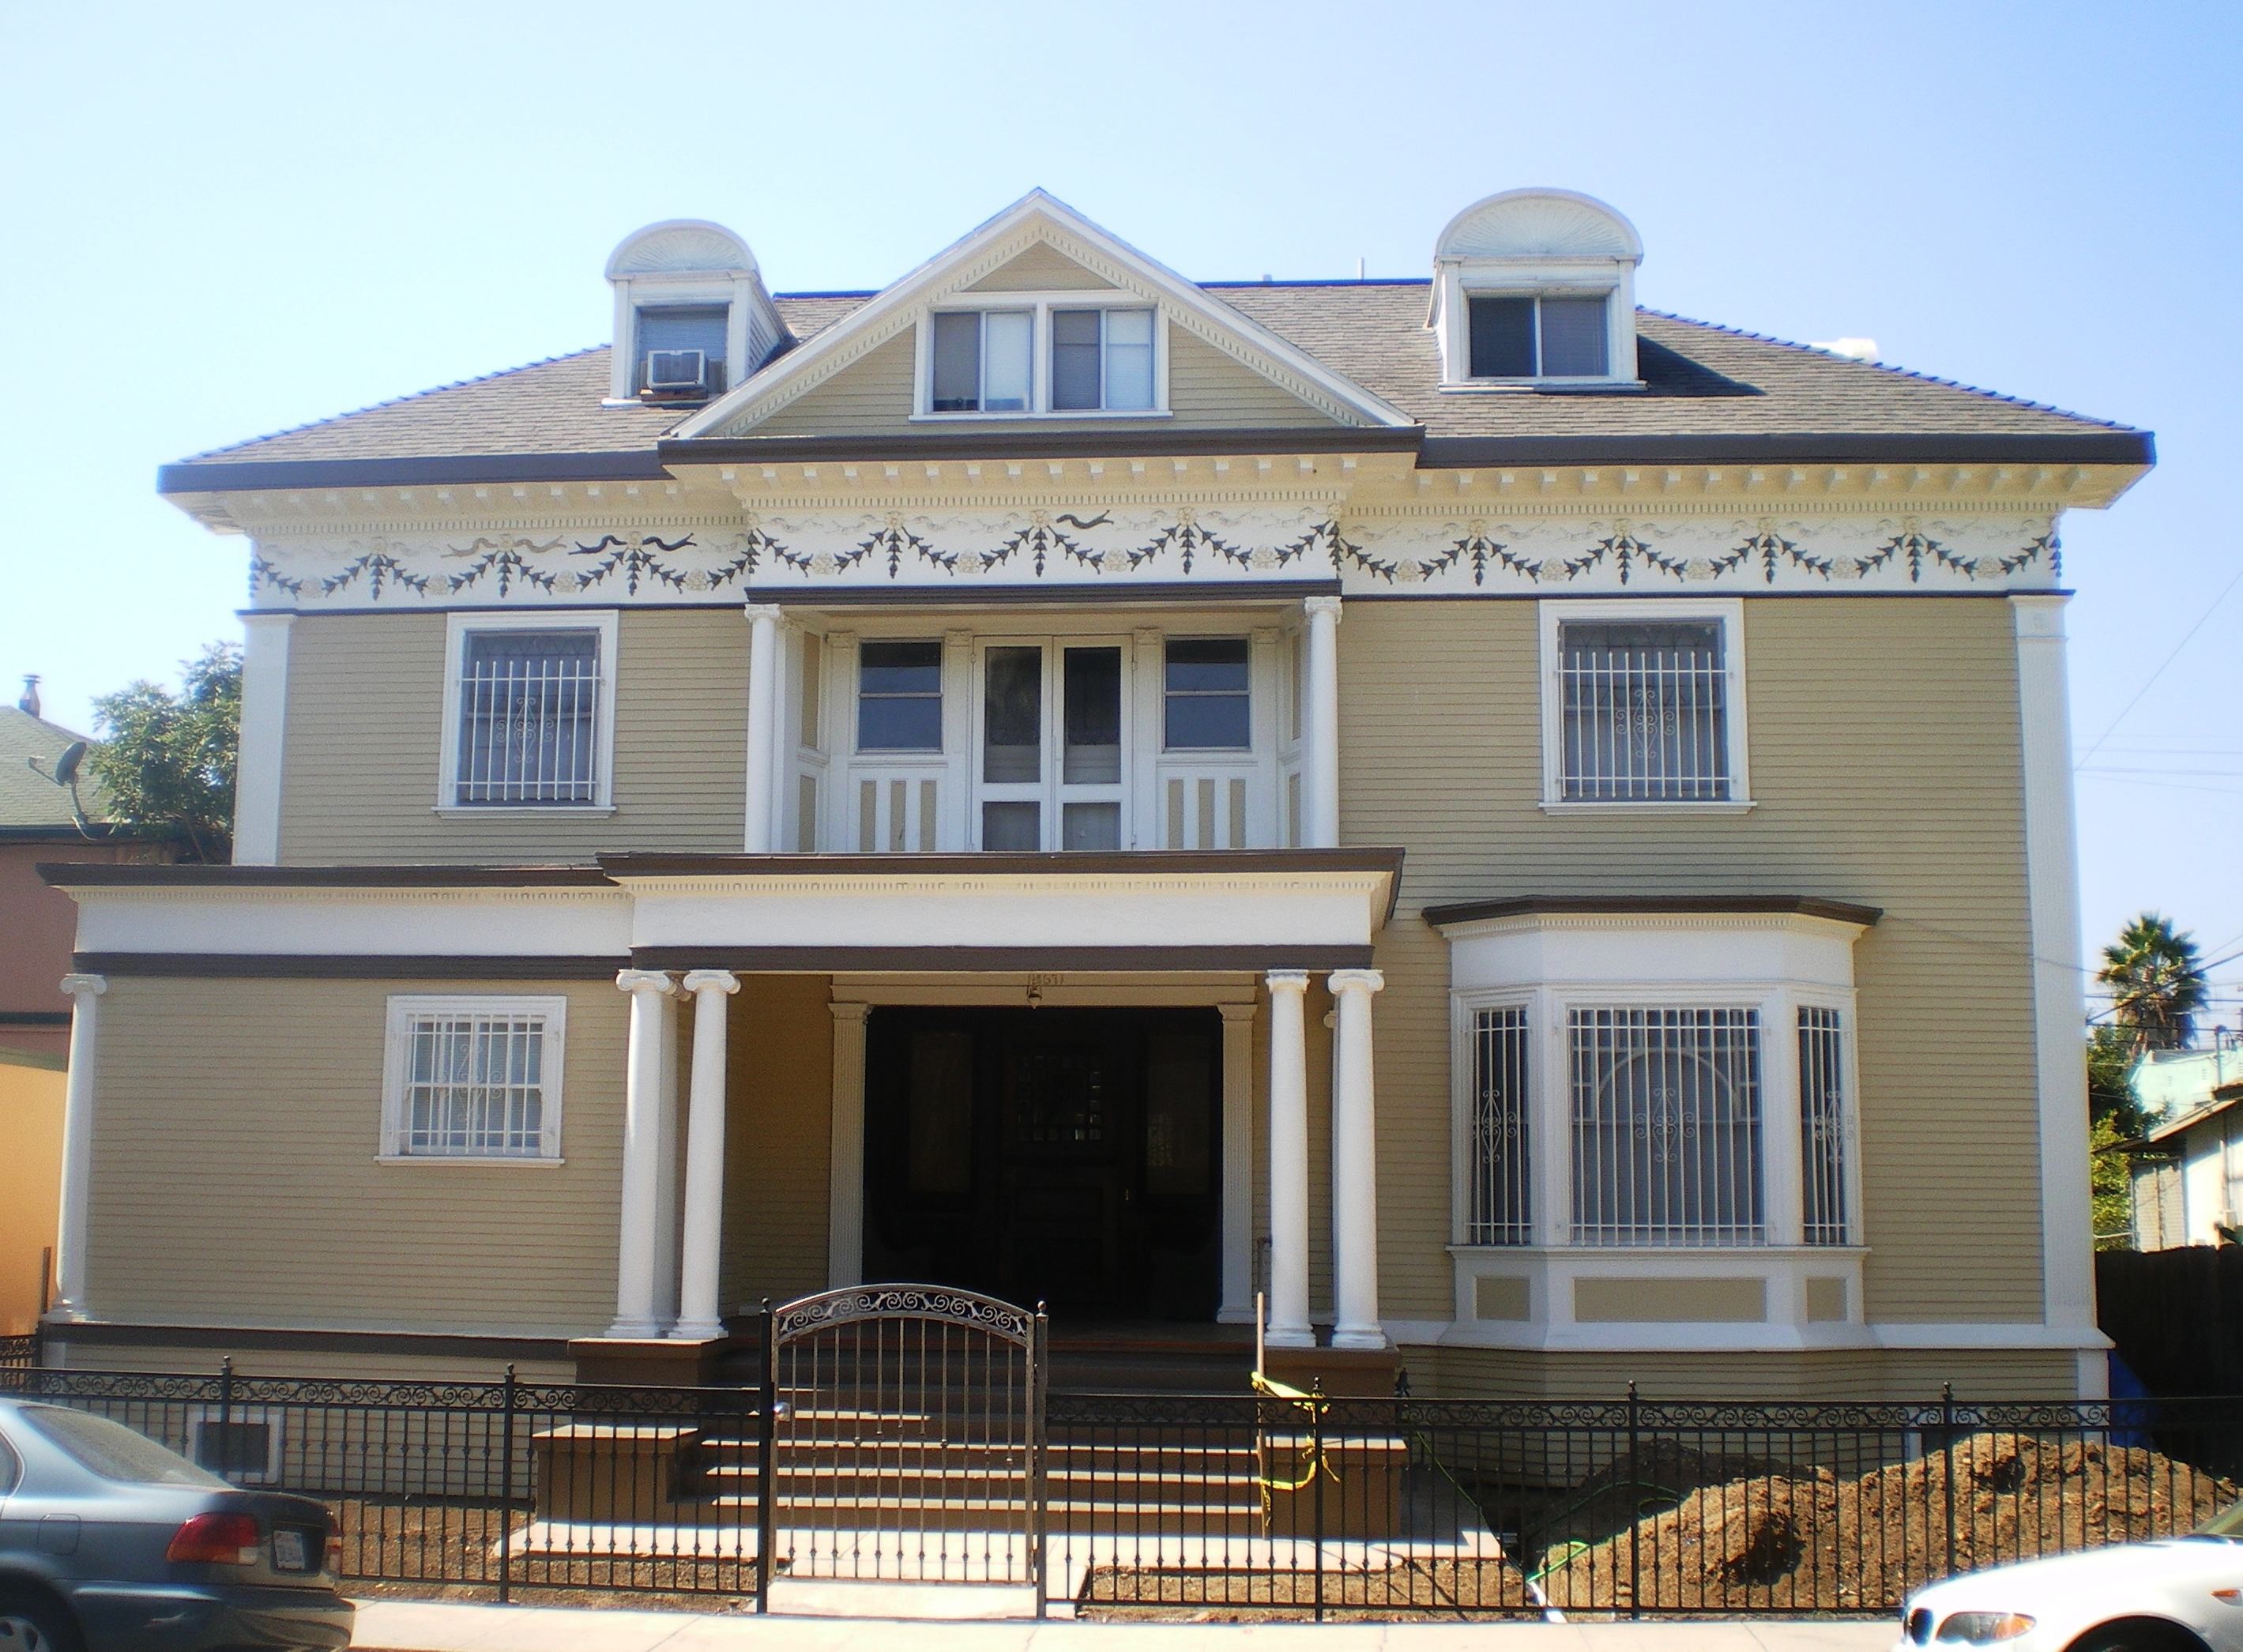 File:House at 2671 Magnolia Ave., Los Angeles.jpg